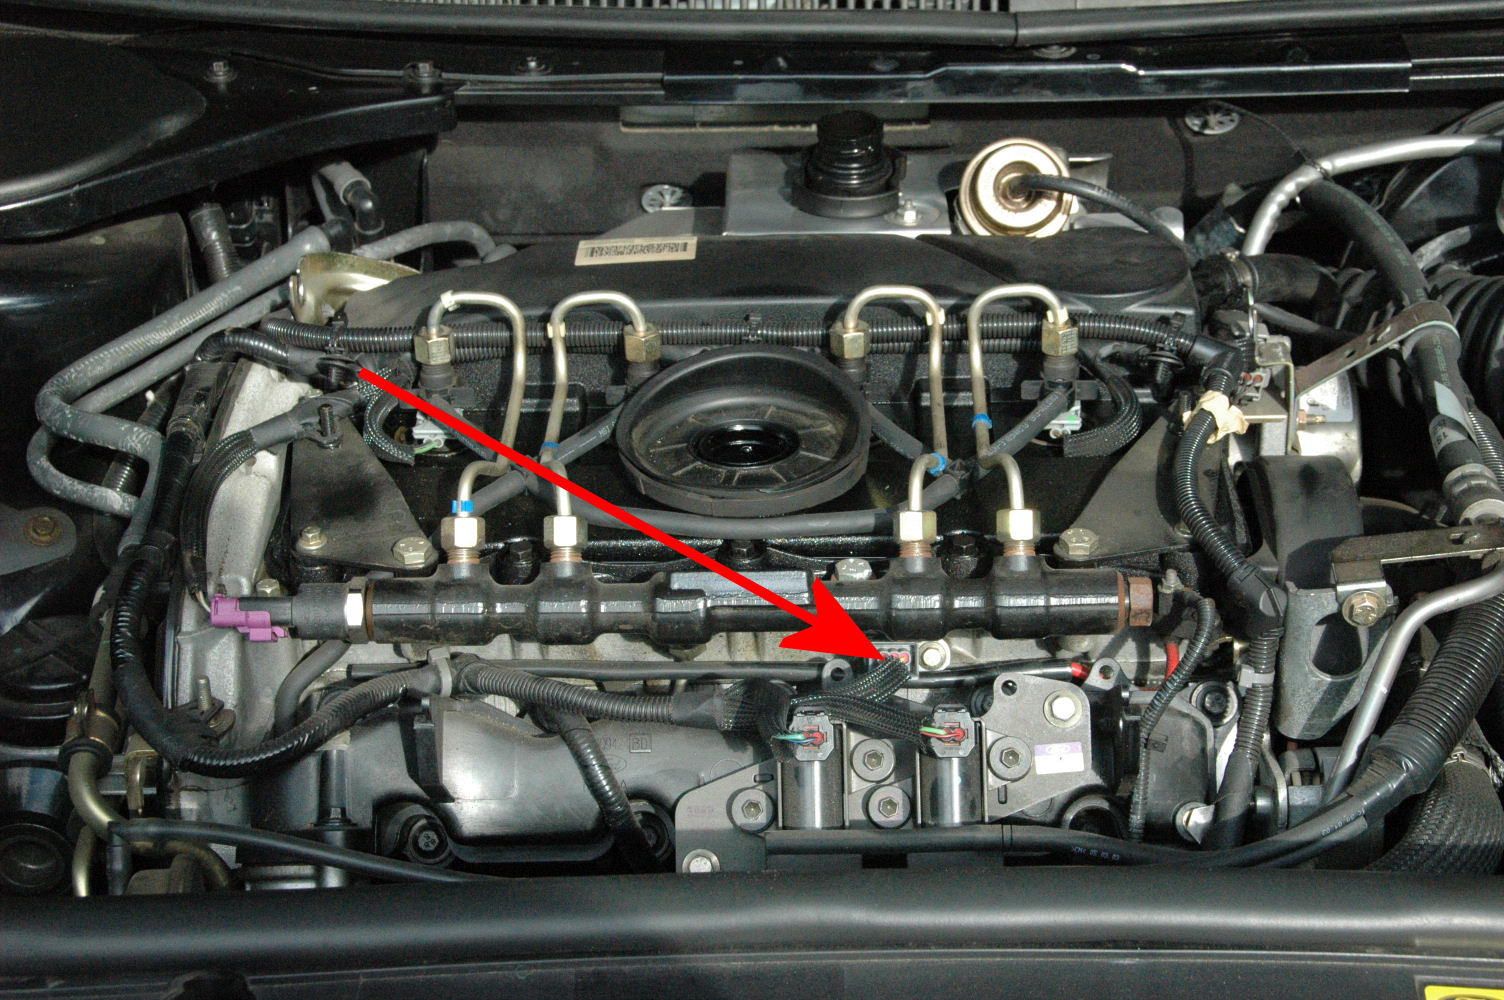 Cadillac Camshaft Position Sensor Location on wiring diagram 2002 cadillac deville